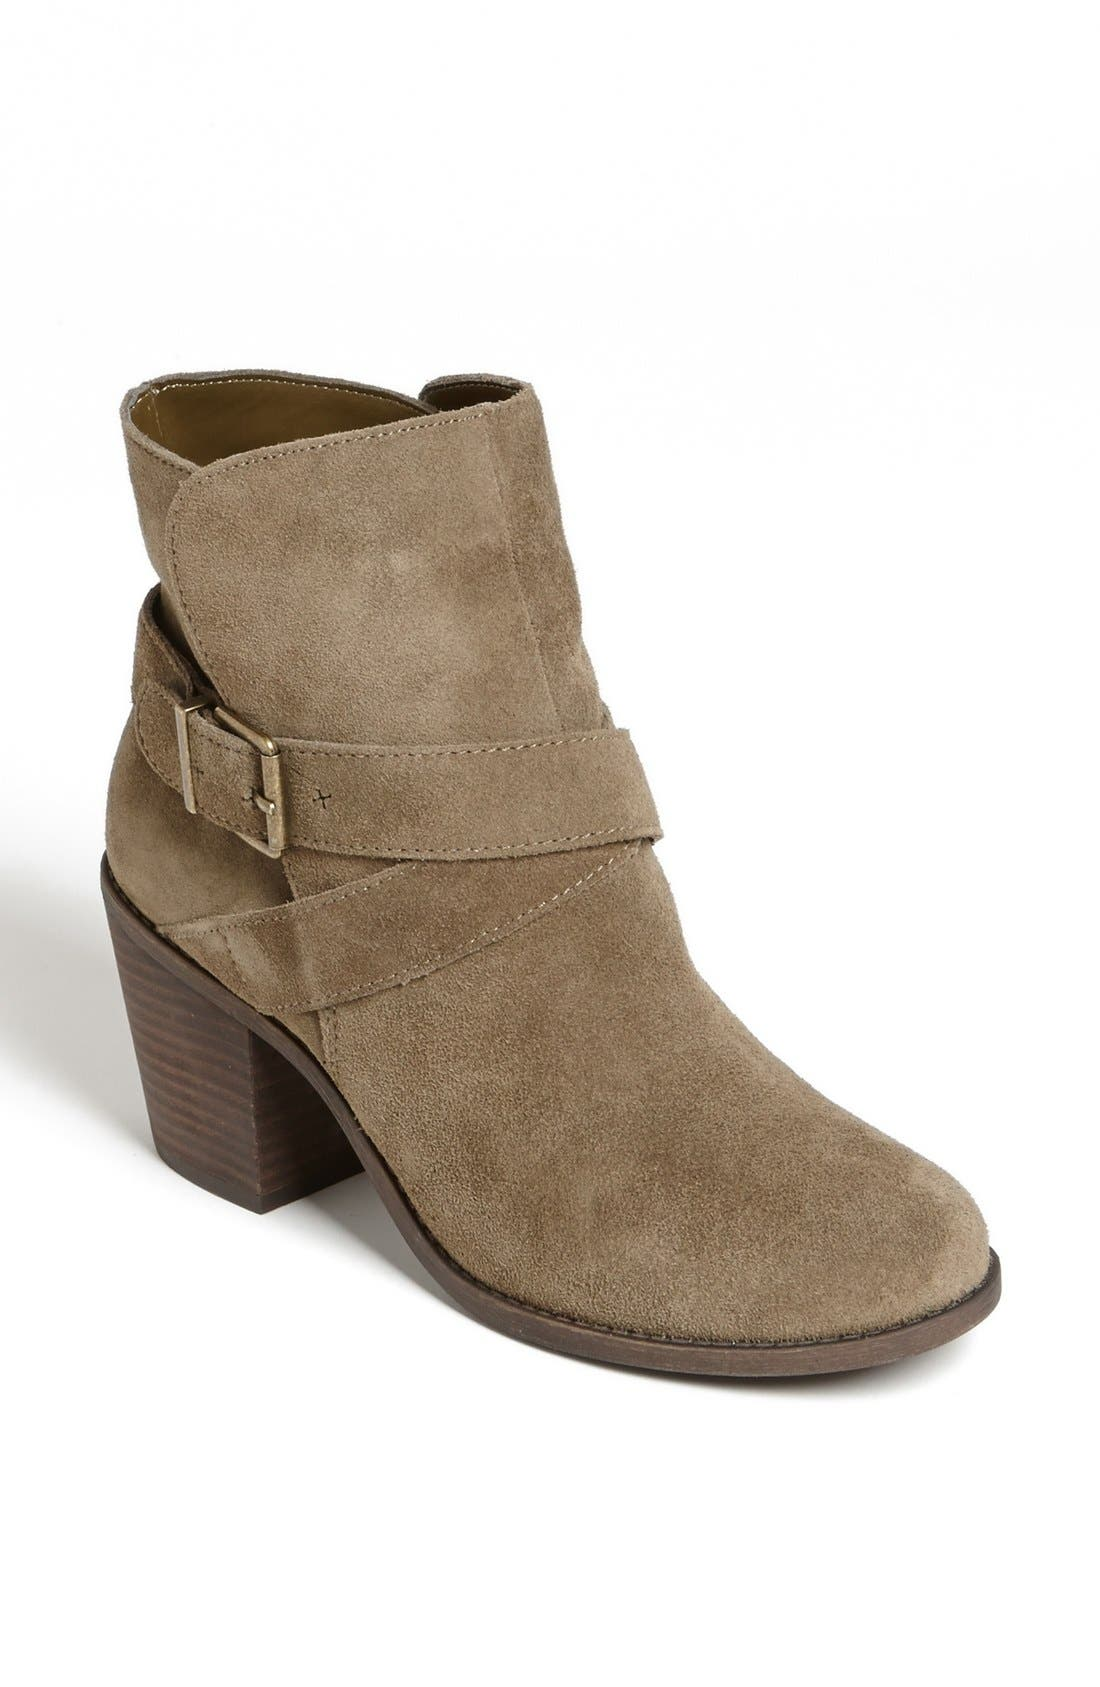 Alternate Image 1 Selected - BCBGeneration 'Aries' Boot